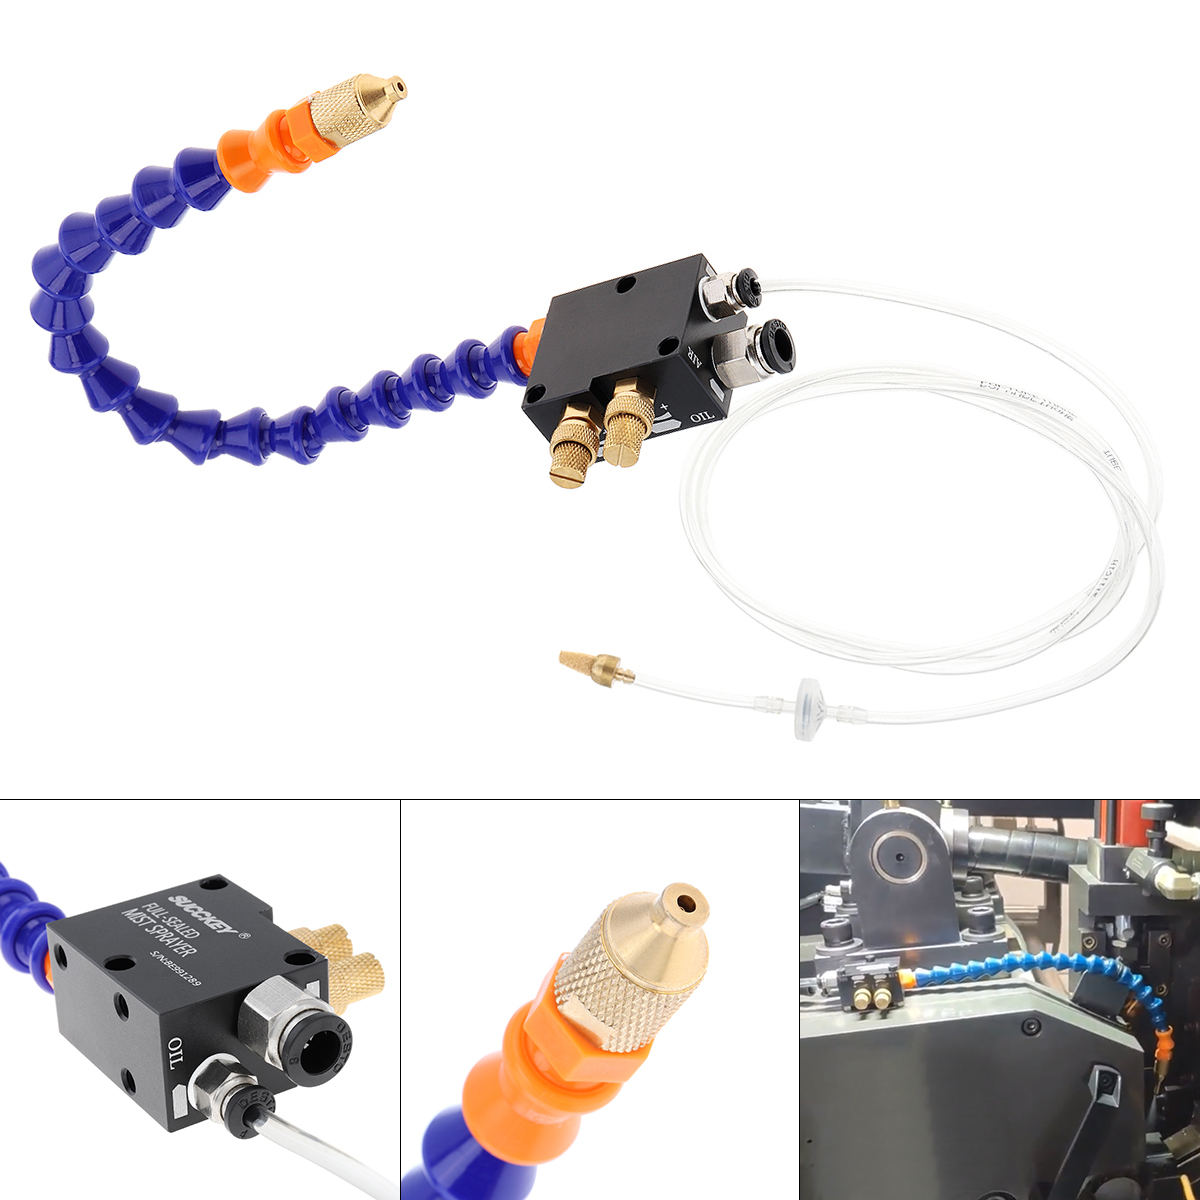 30cm Mist Coolant Lubrication Spray System With 0.6mm Inner Diameter Micro Nozzle And Fully Sealed Plastic Tube